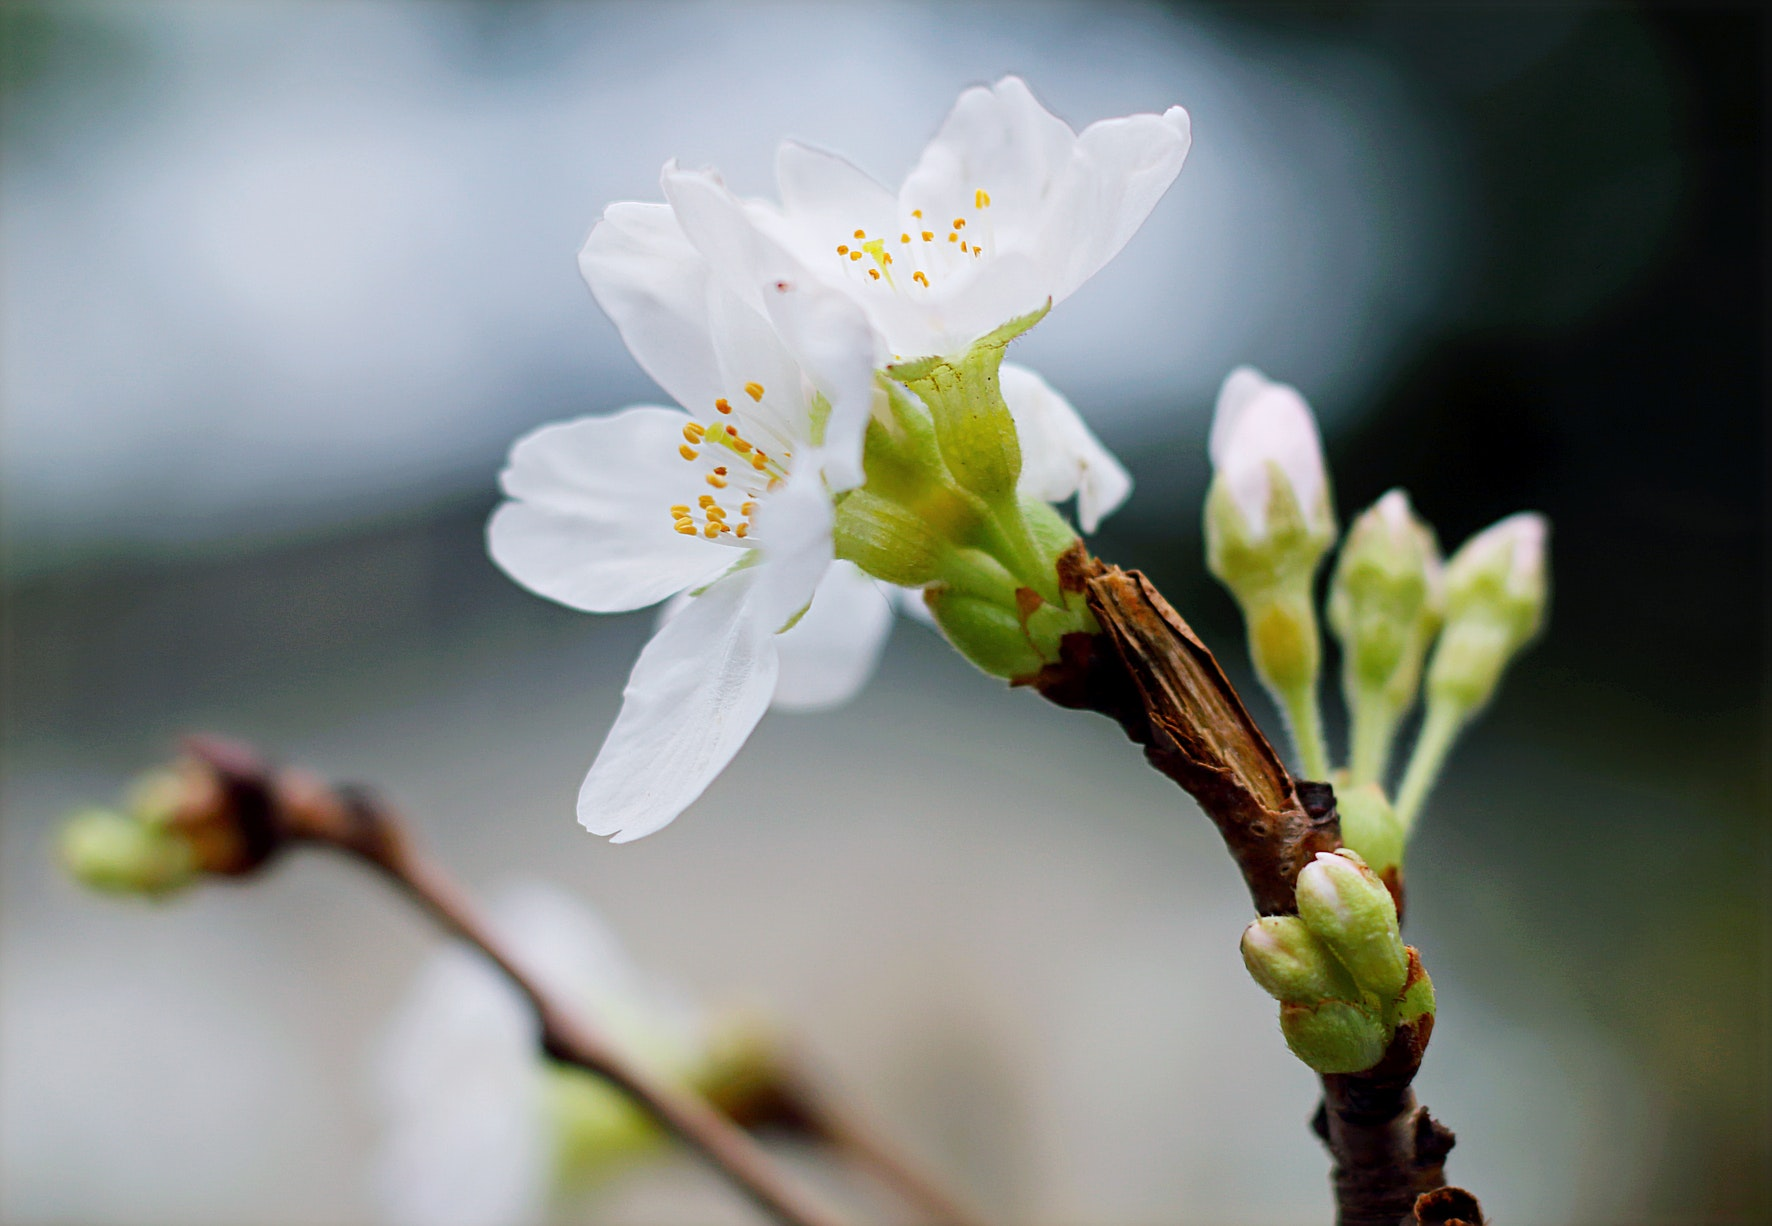 Selective Focus Of White Clustered Flowers, Bloom, Blossom, Delicate, Flora, HQ Photo